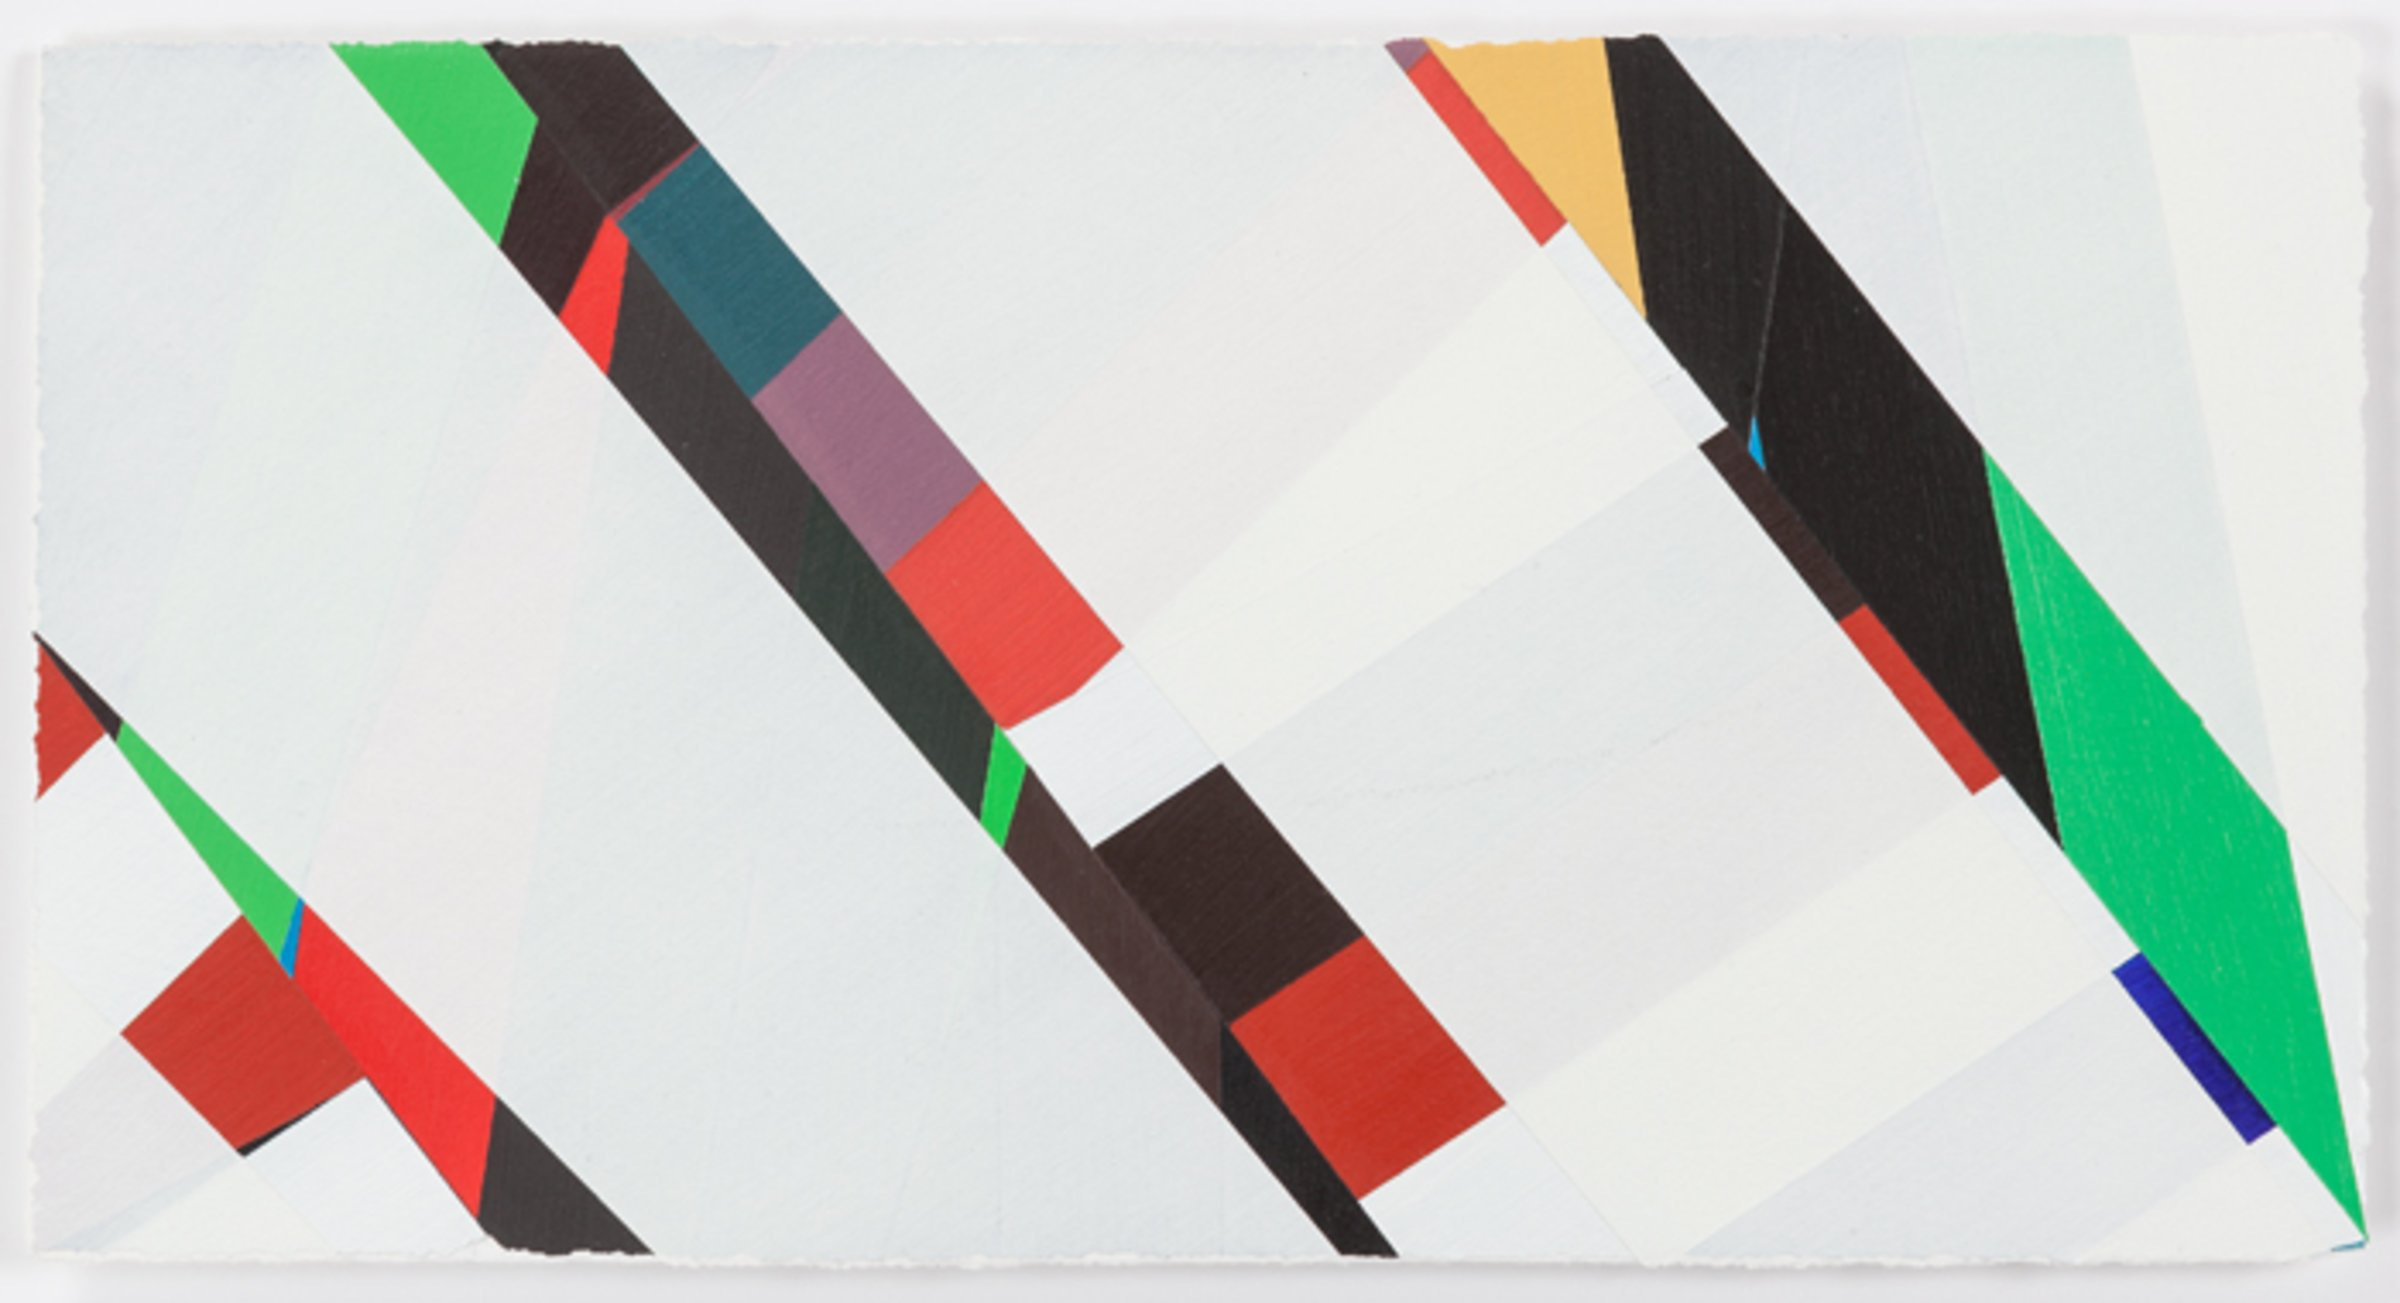 Jerry Walden, Hundred Fifty One (73 Plus One), 2014